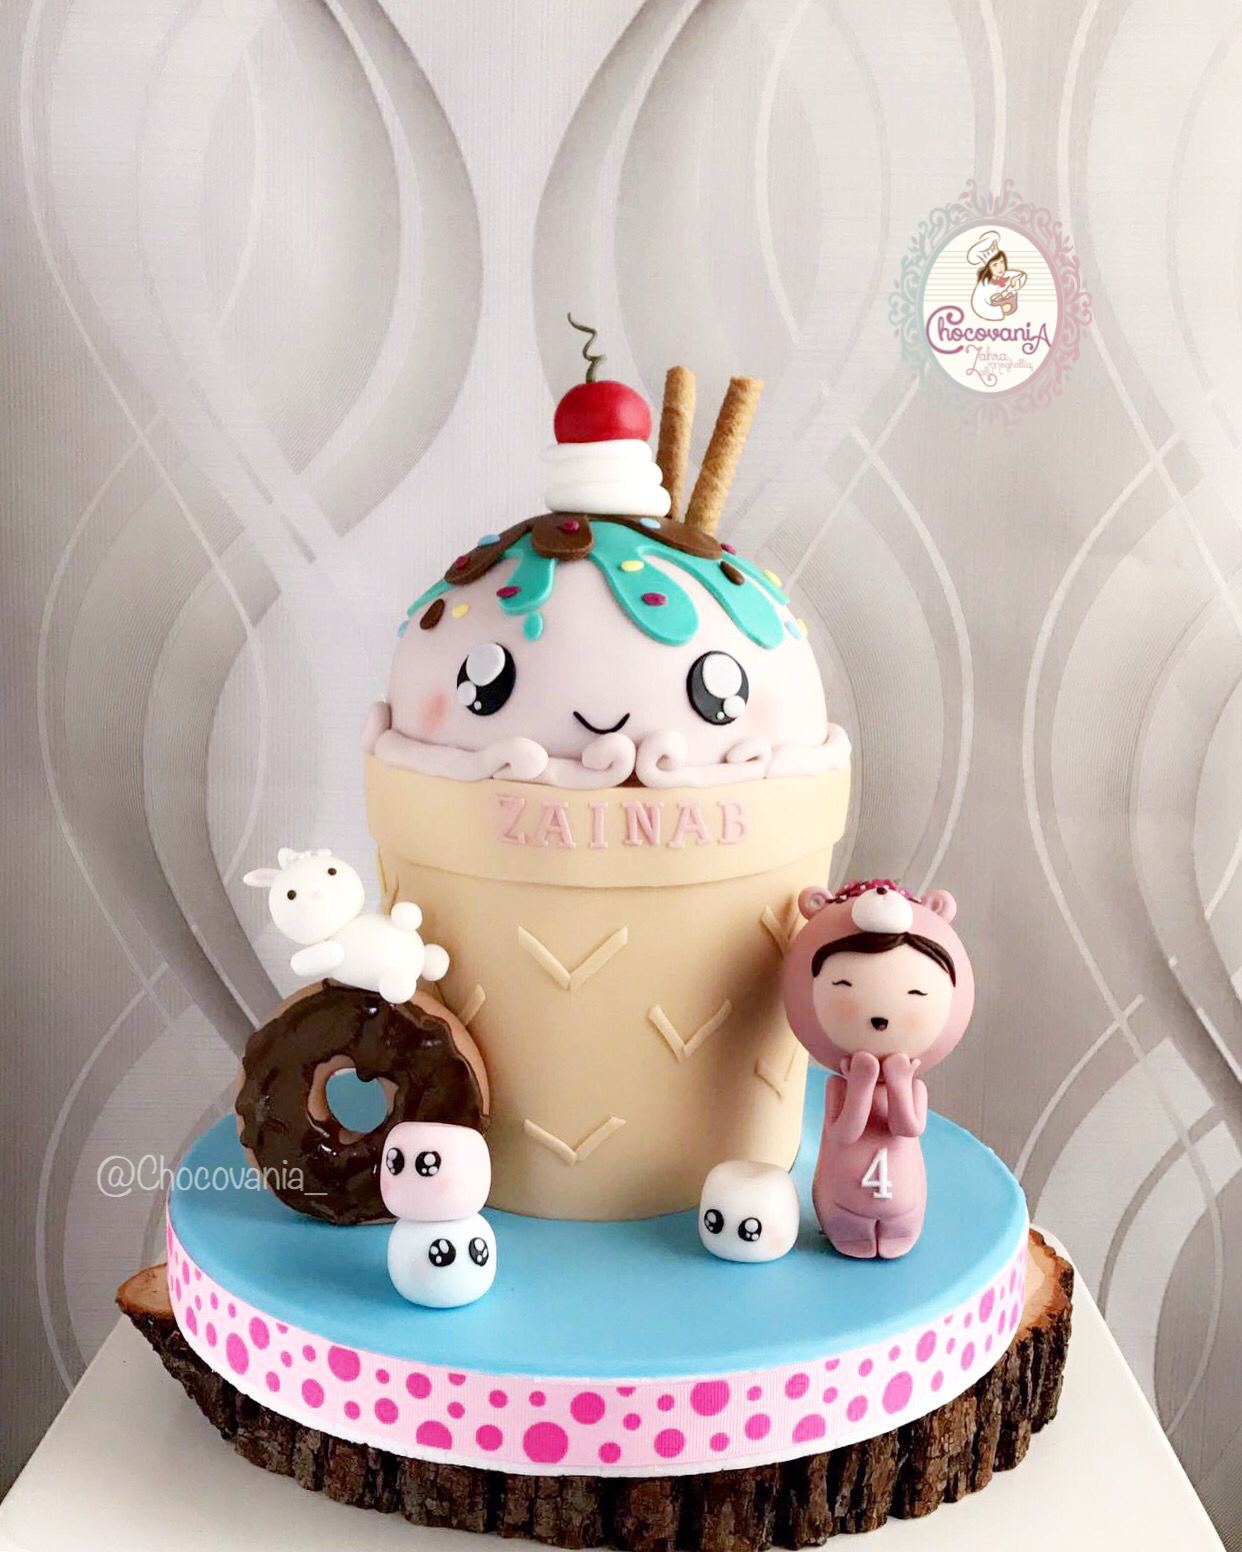 Ice Cream and sweets fondant birthday cake